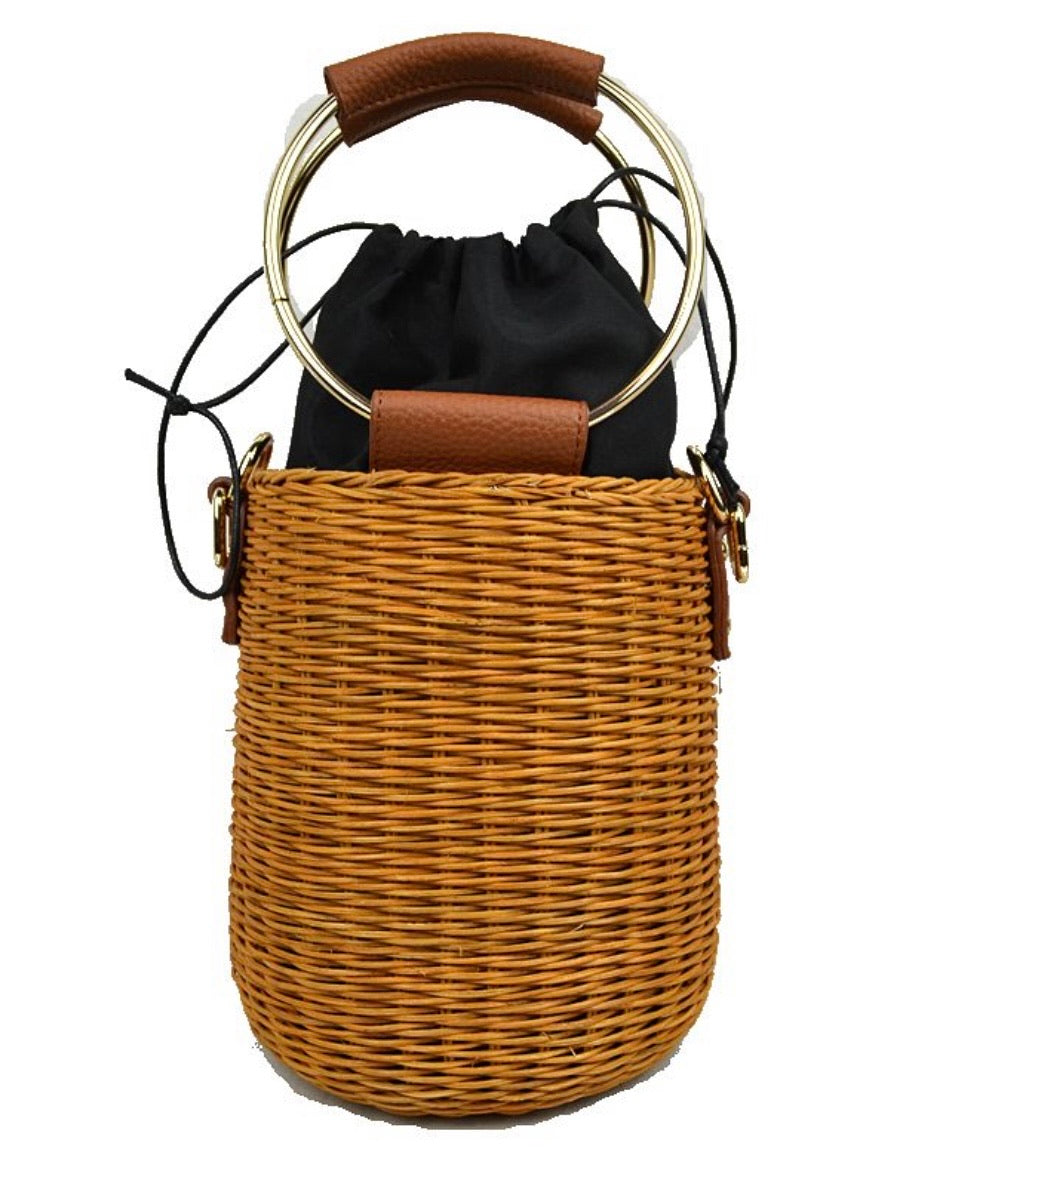 The Perfect Straw bag